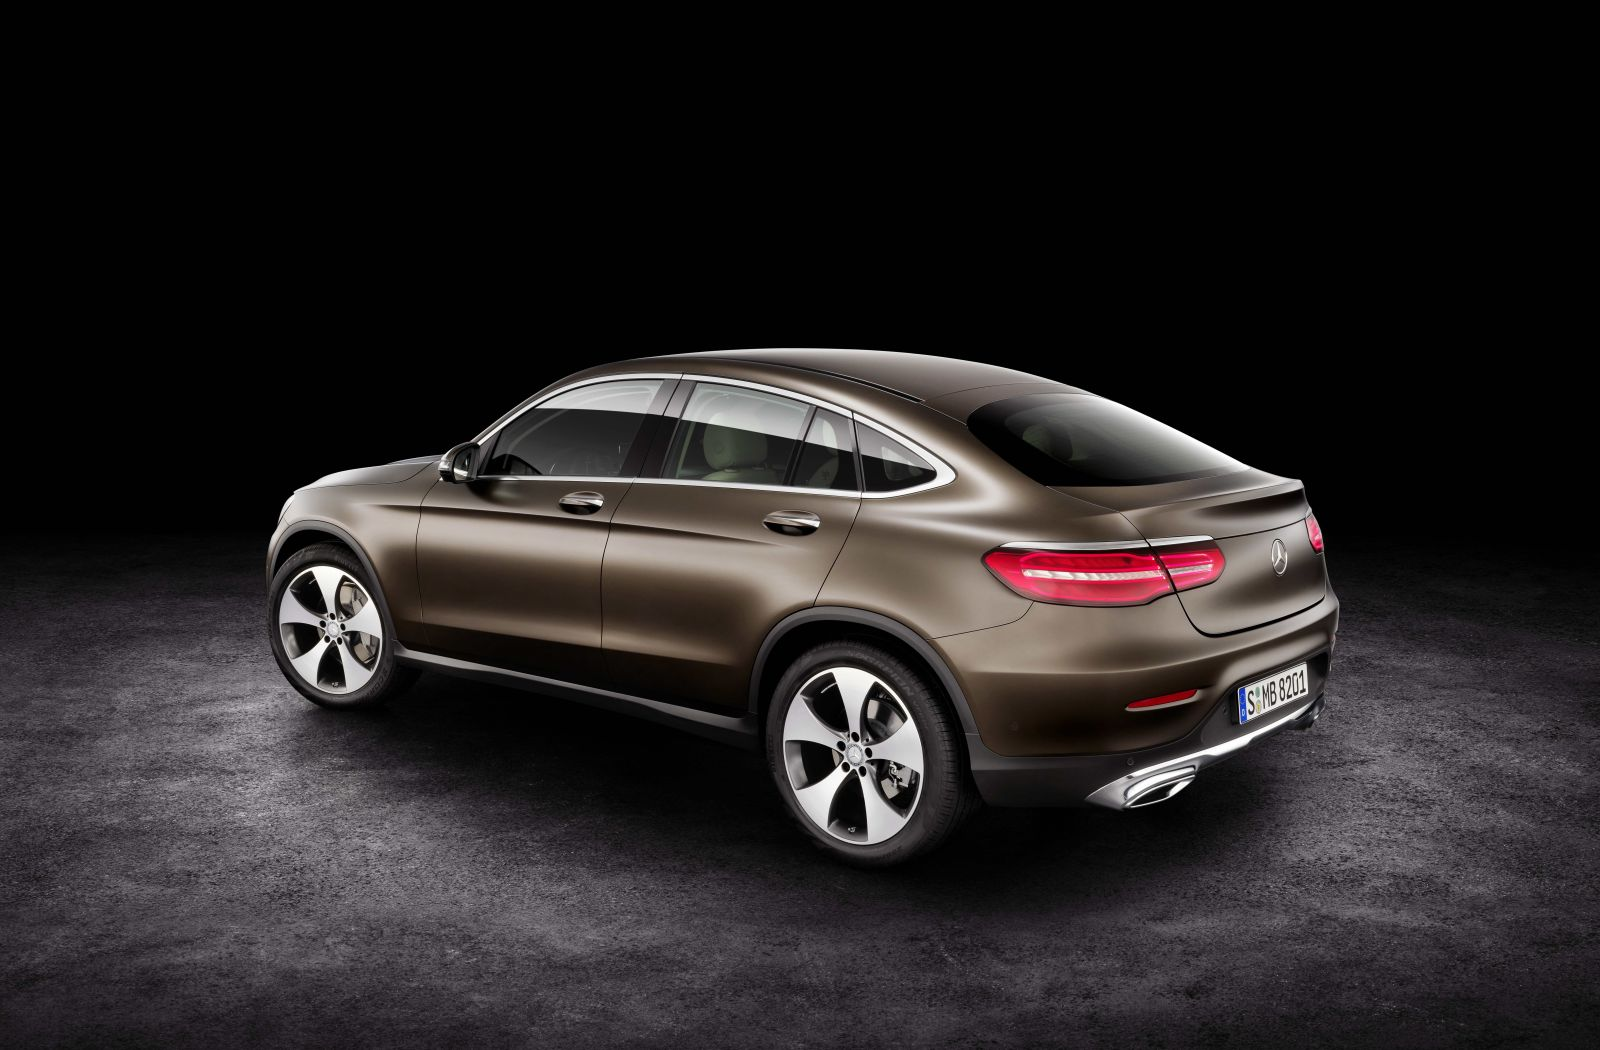 Mercedes Benz GLC Coupe (23)